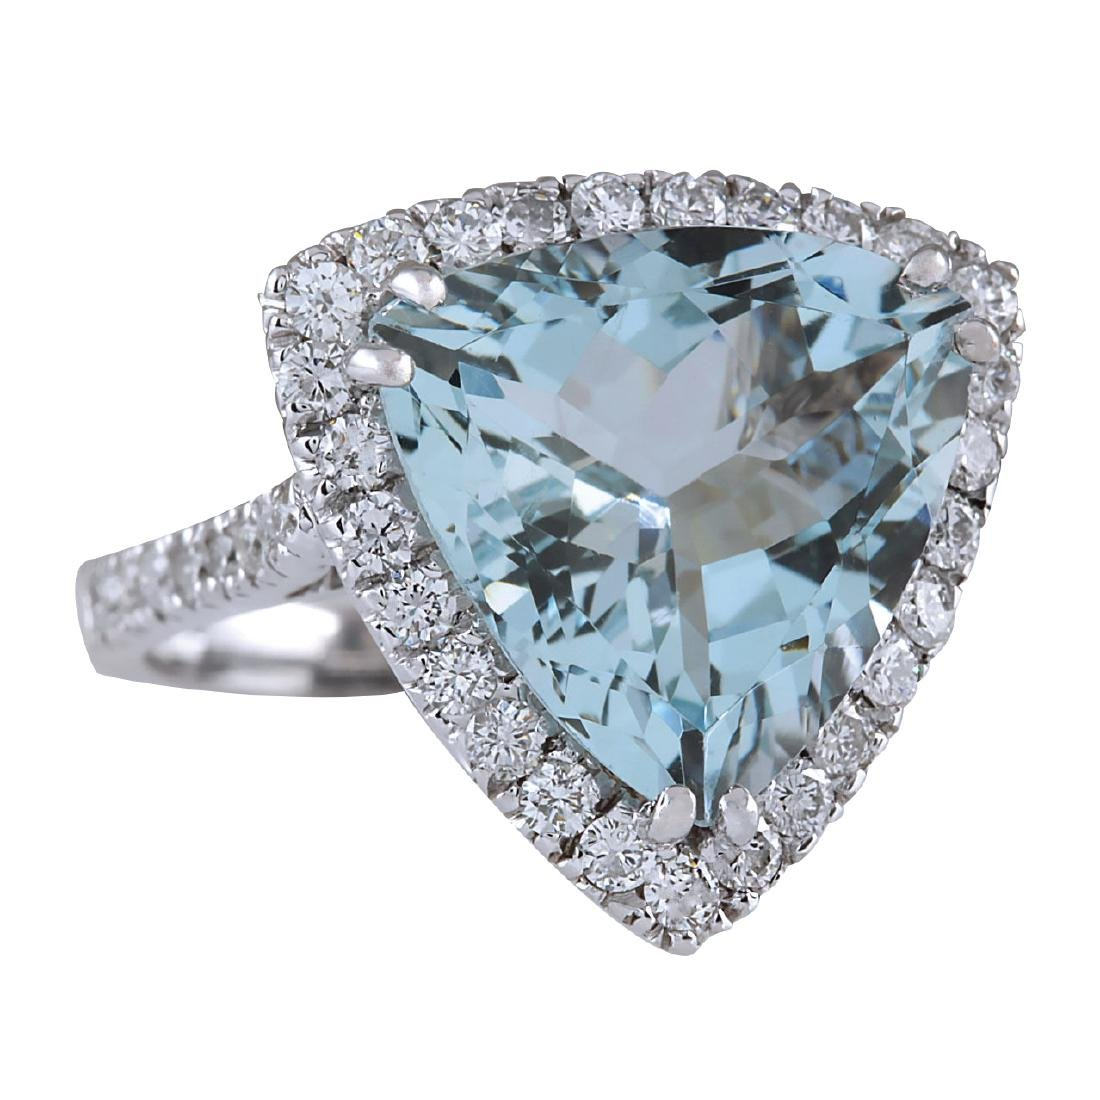 7.75CTW Natural Aquamarine And Diamond Ring In 18K - 2